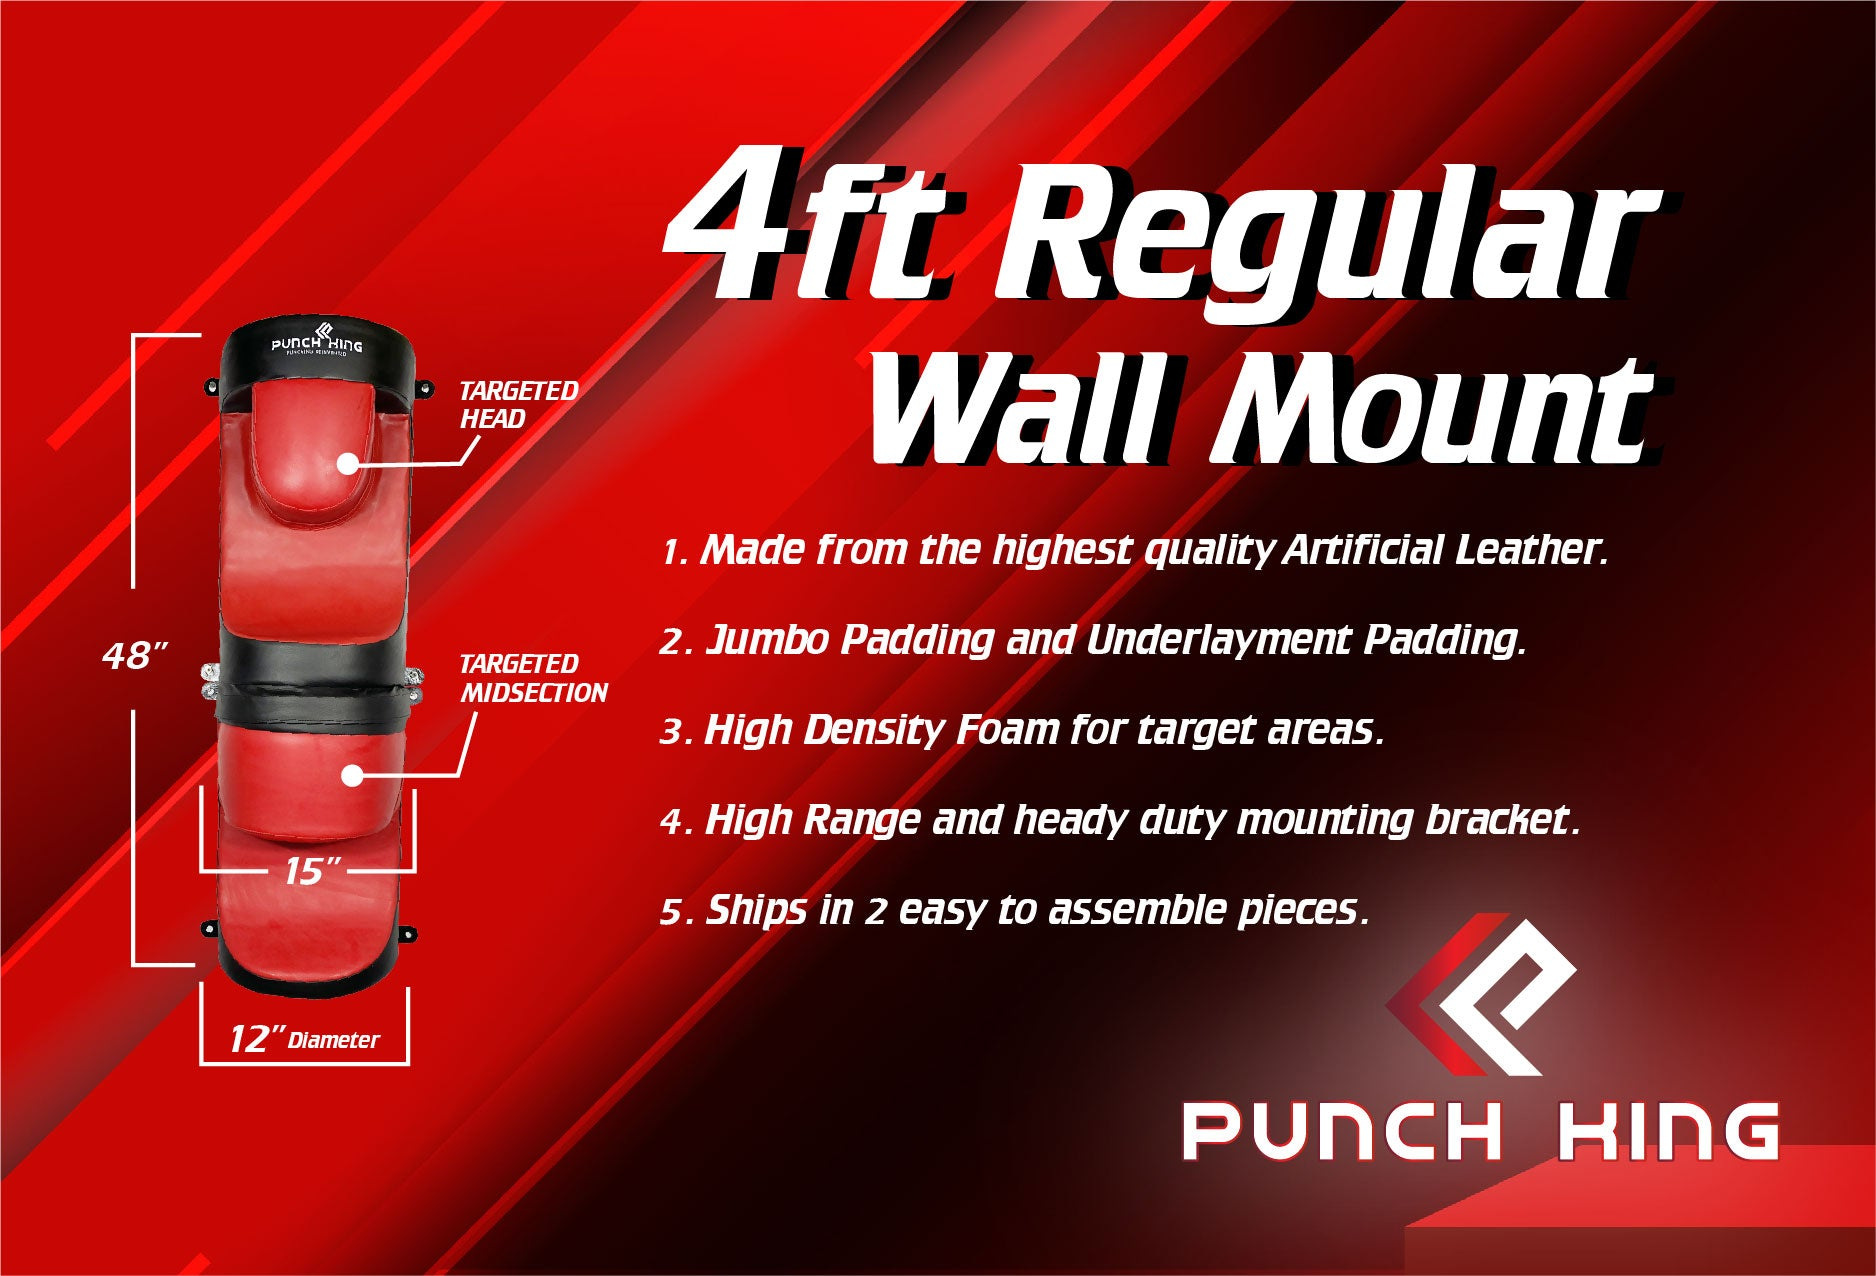 The Wall Mount Regular 4ft Striking System